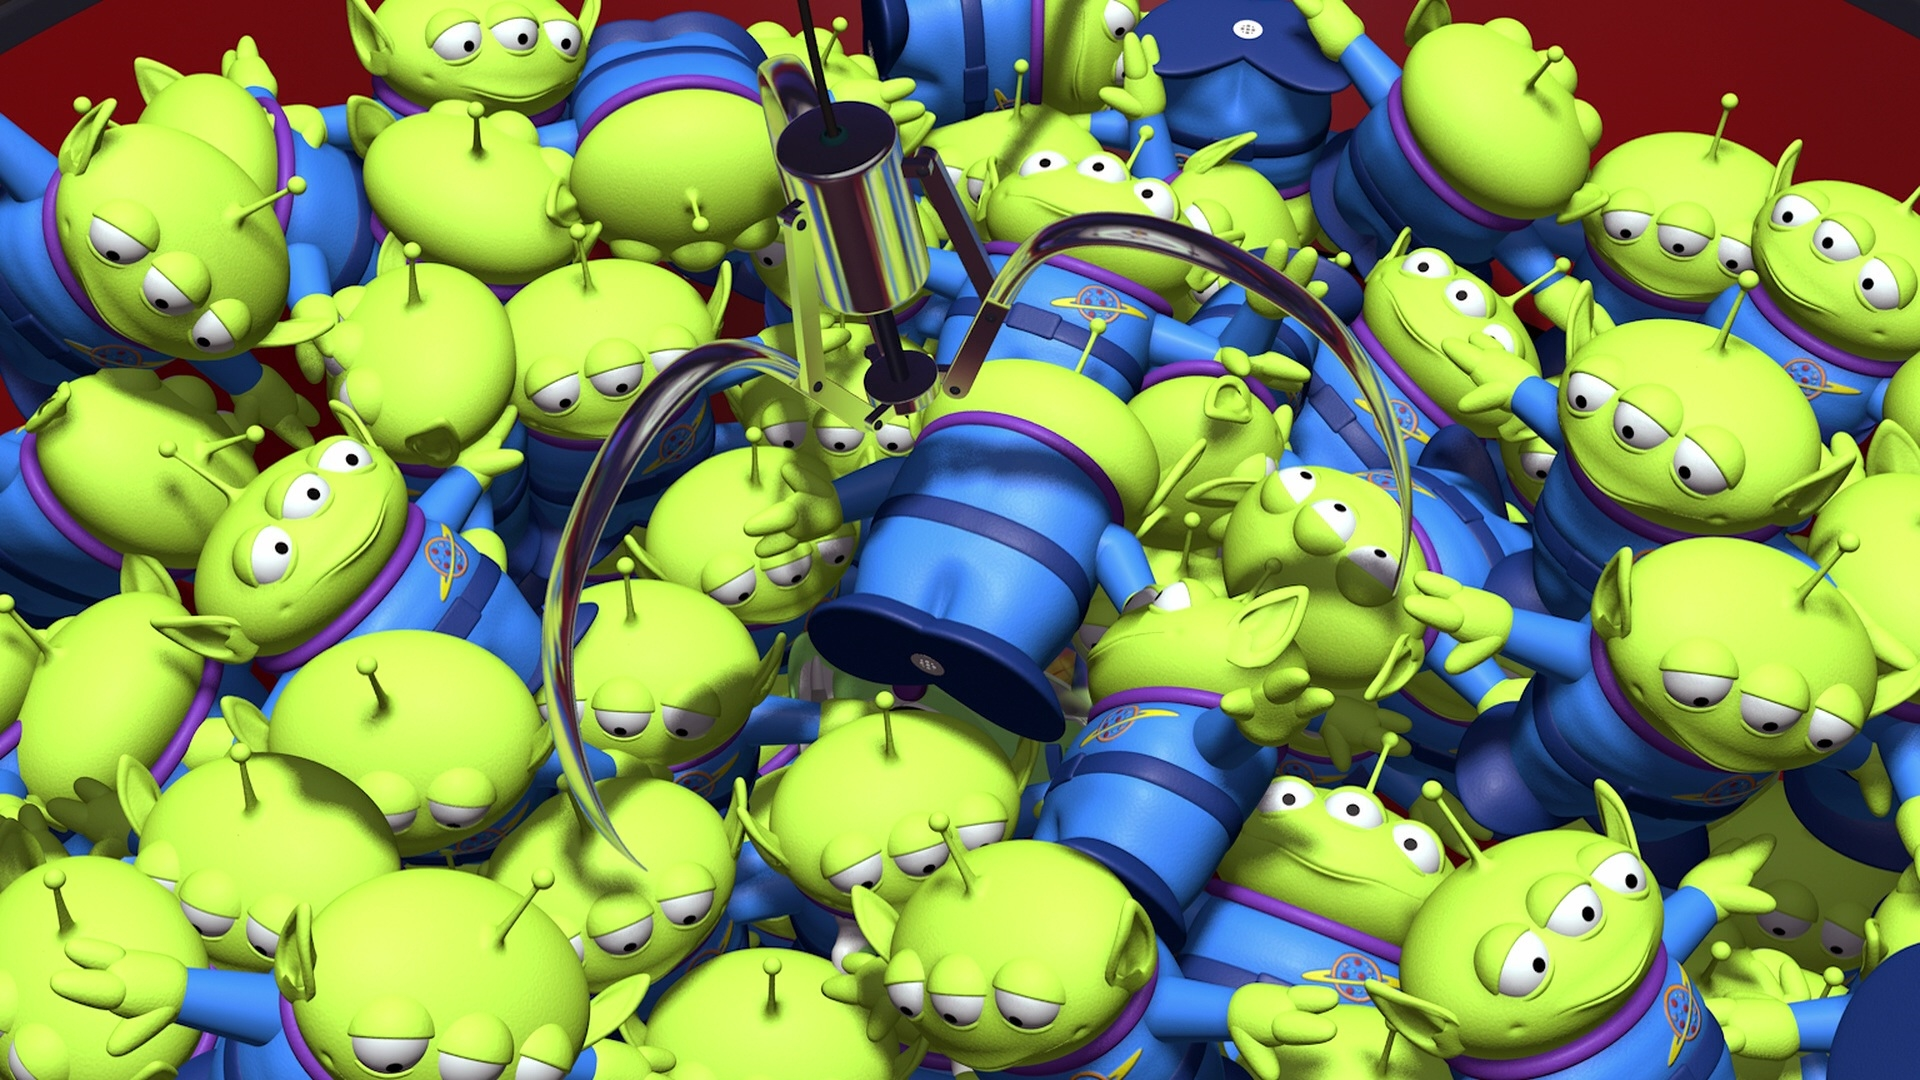 aliens eyes toy story 1 2 3 free hd wallpaper